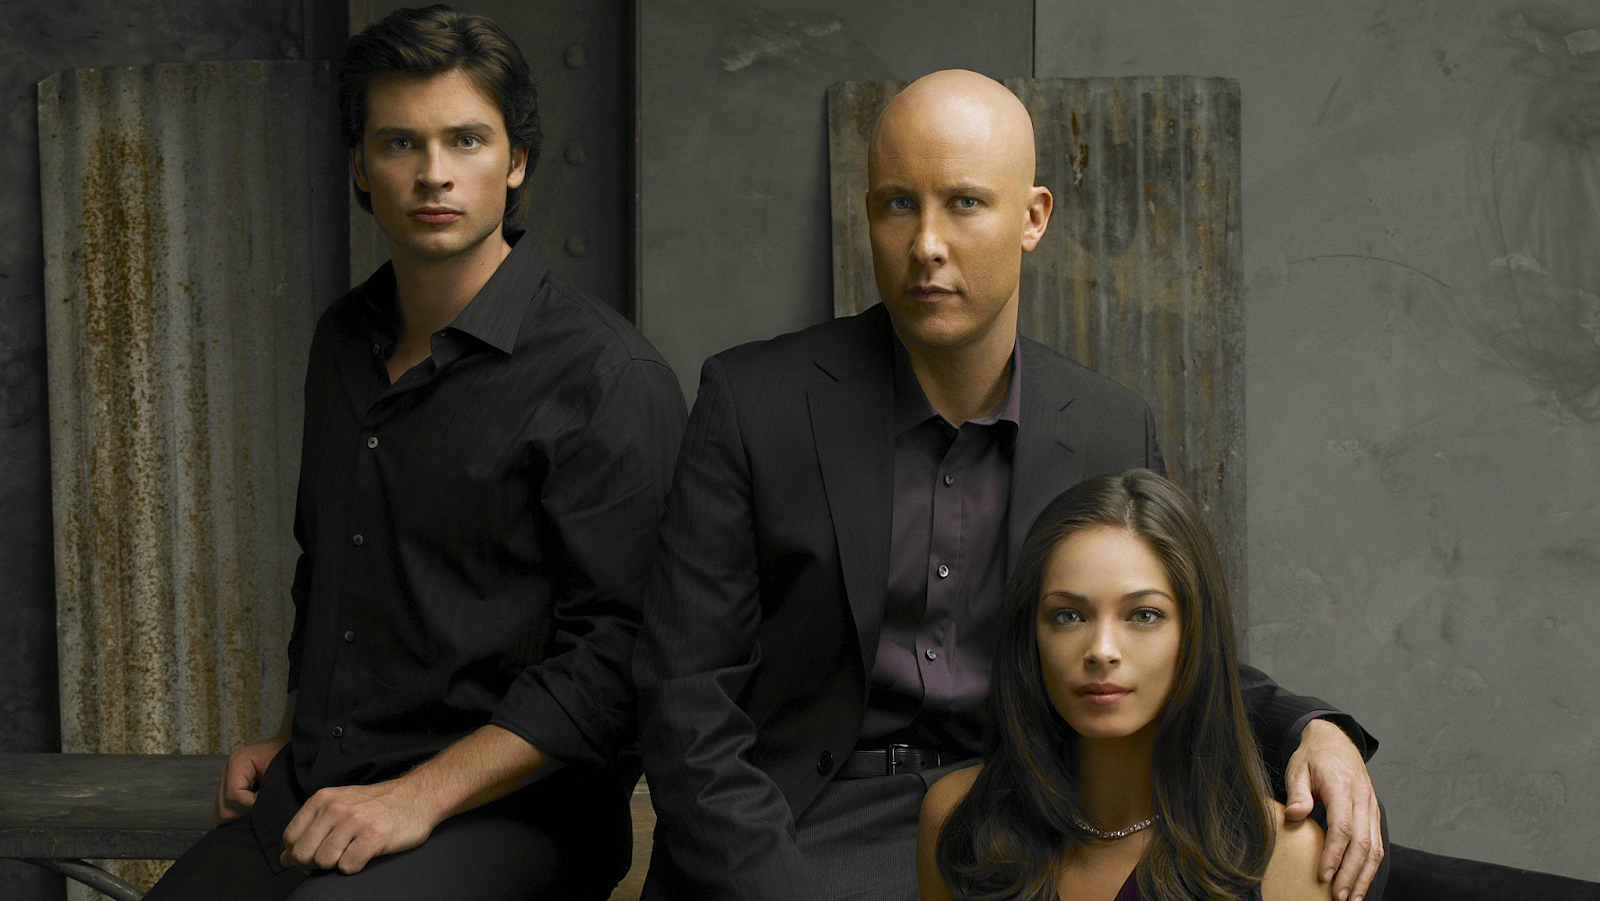 Smallville Tom Welling Clark Kent Michael Rosenbaum Lex Luthor Kristin Kreuk Lana Lang The CW